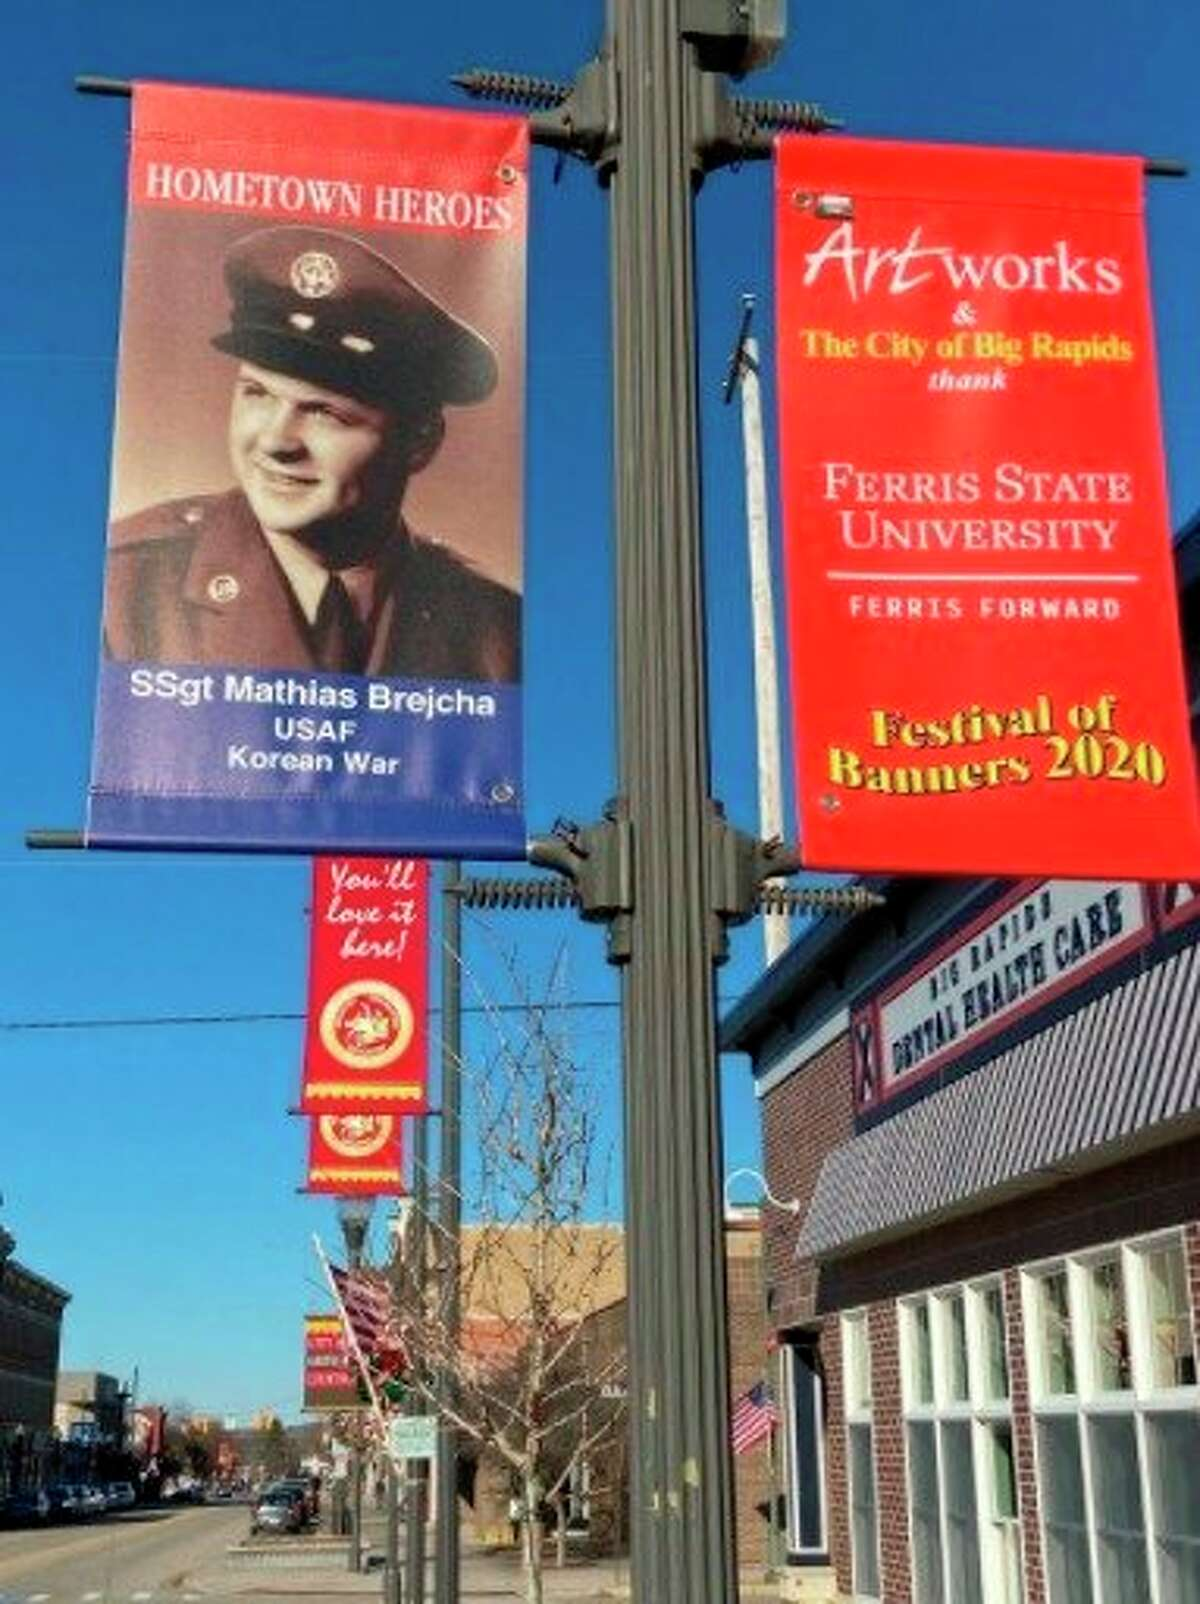 Artworks of Big Rapids is now taking applications for the Hometown Heroes Banner program until Aug. 13, the proceeds from which will gotoward supporting local veteran programming and services. (Courtesy/Mark Brejcha)